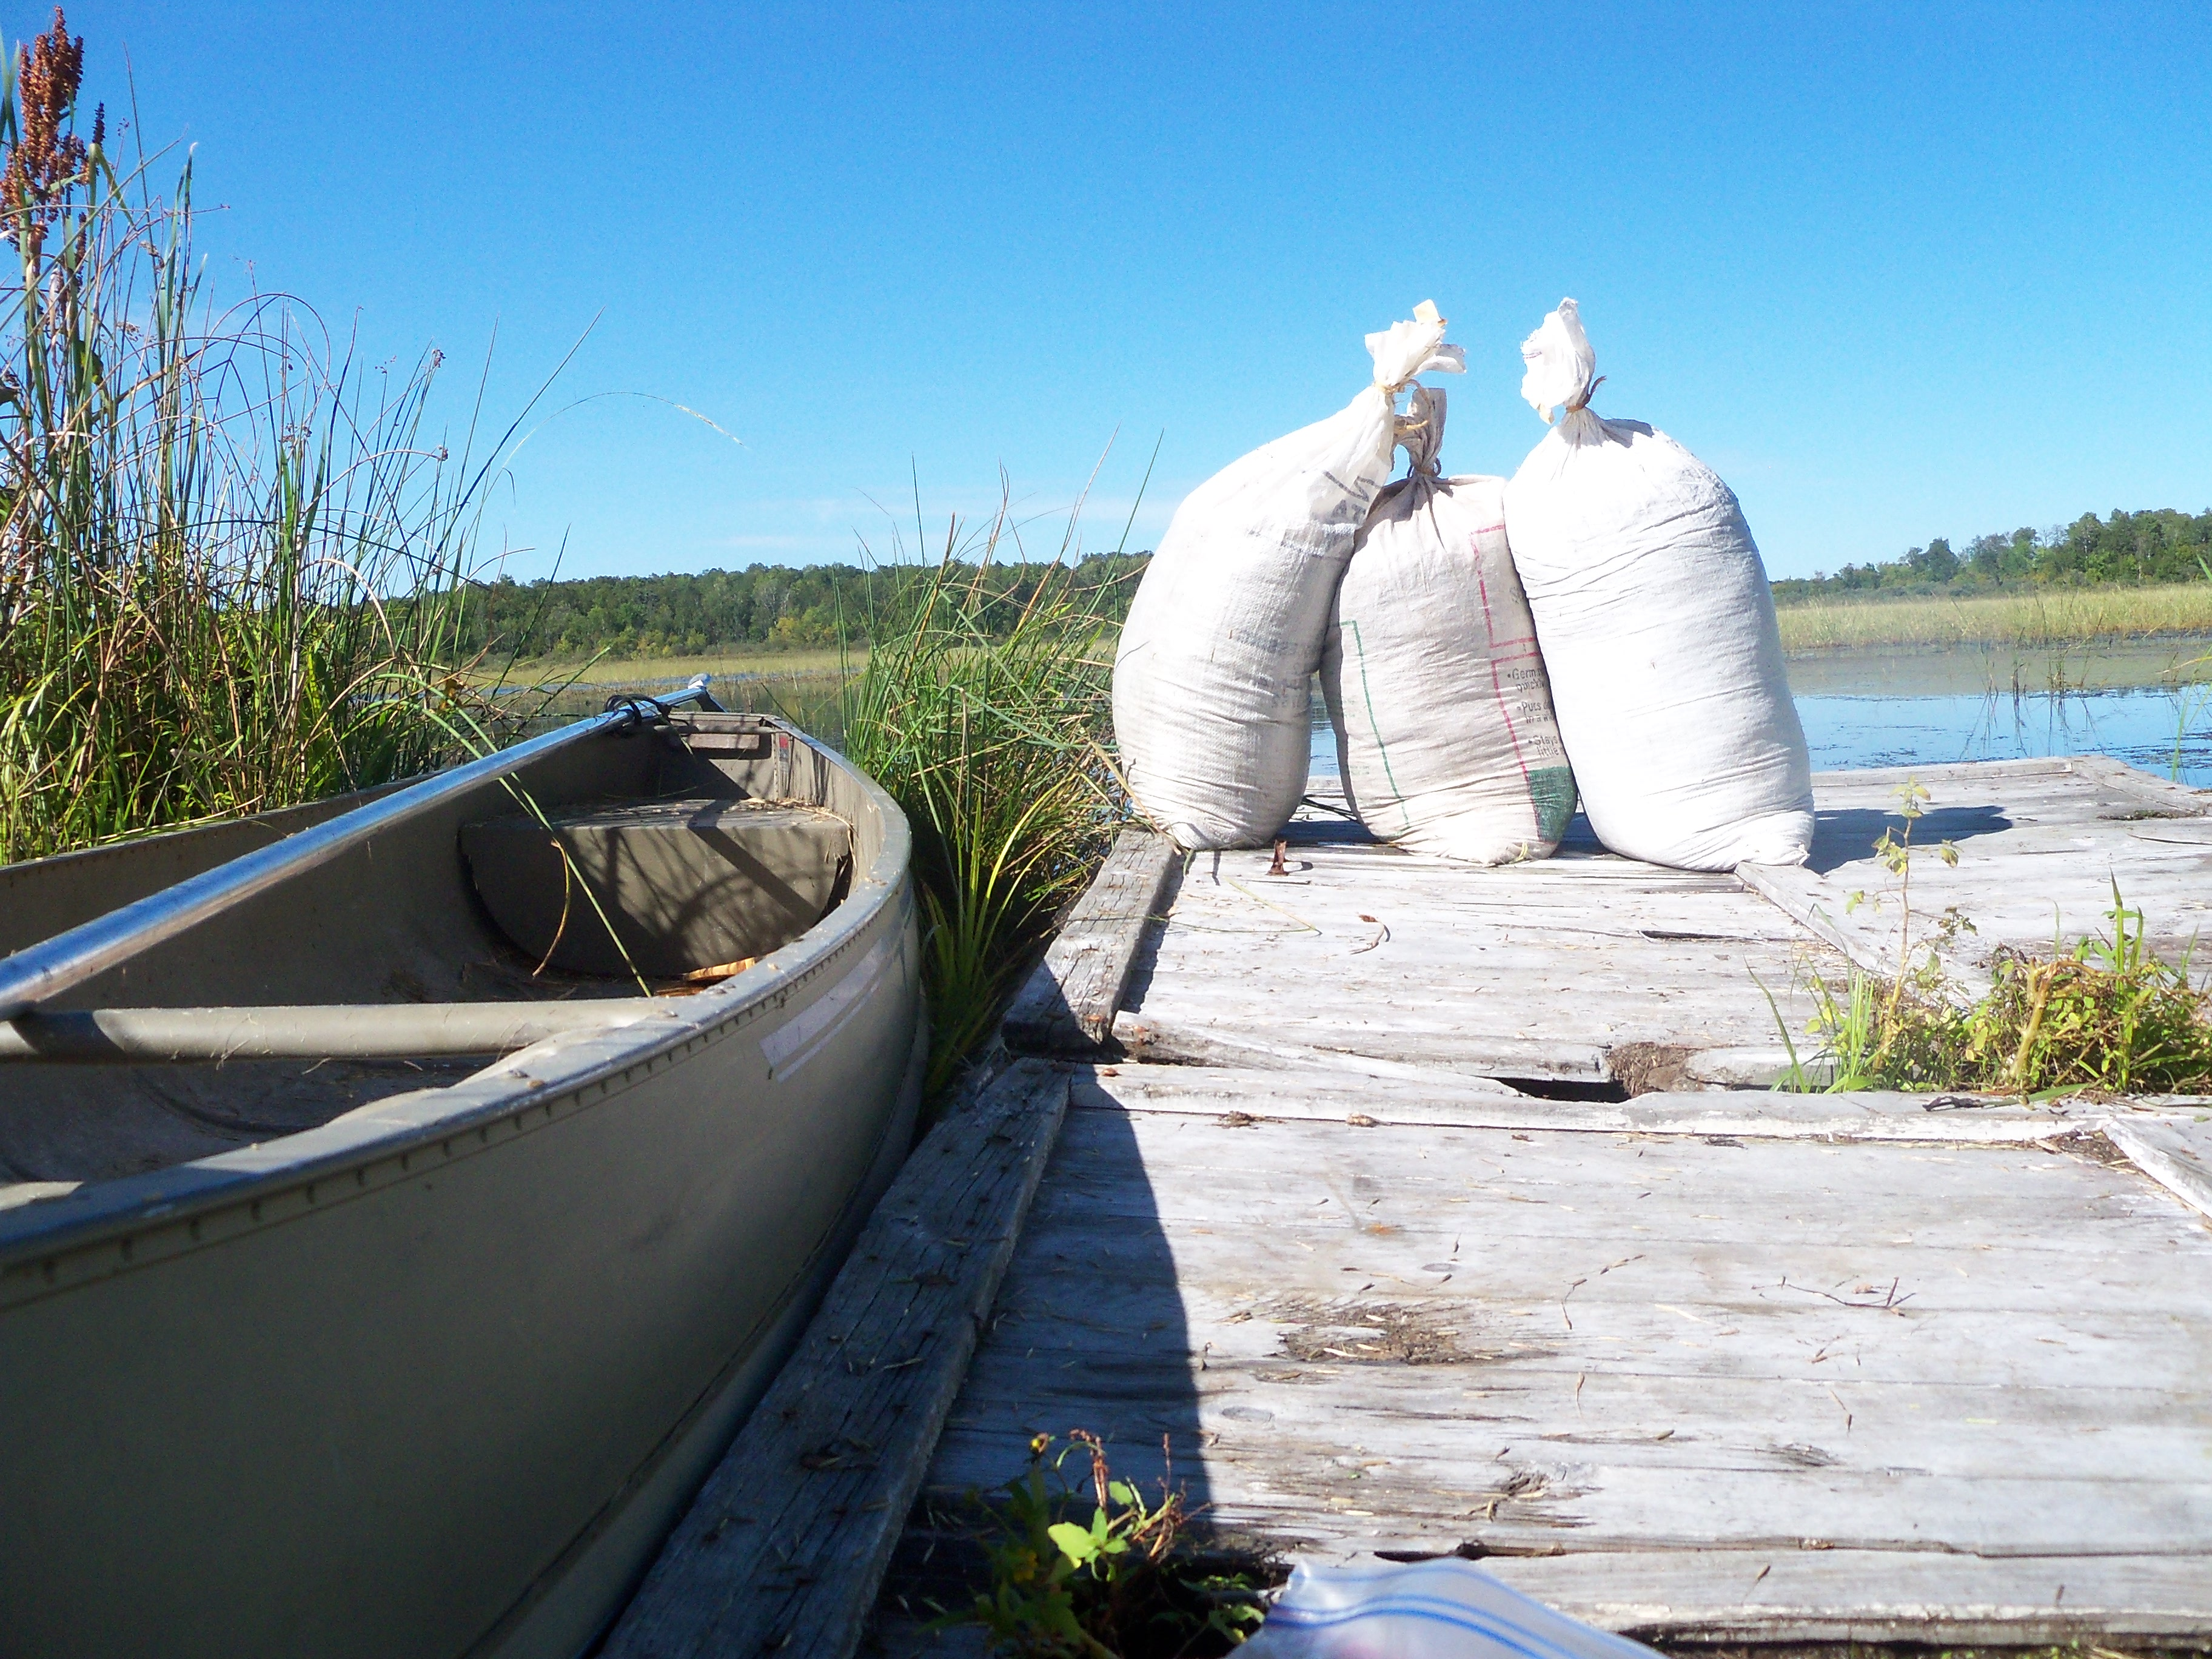 Canoe next to dock with bags of harvested wild rice